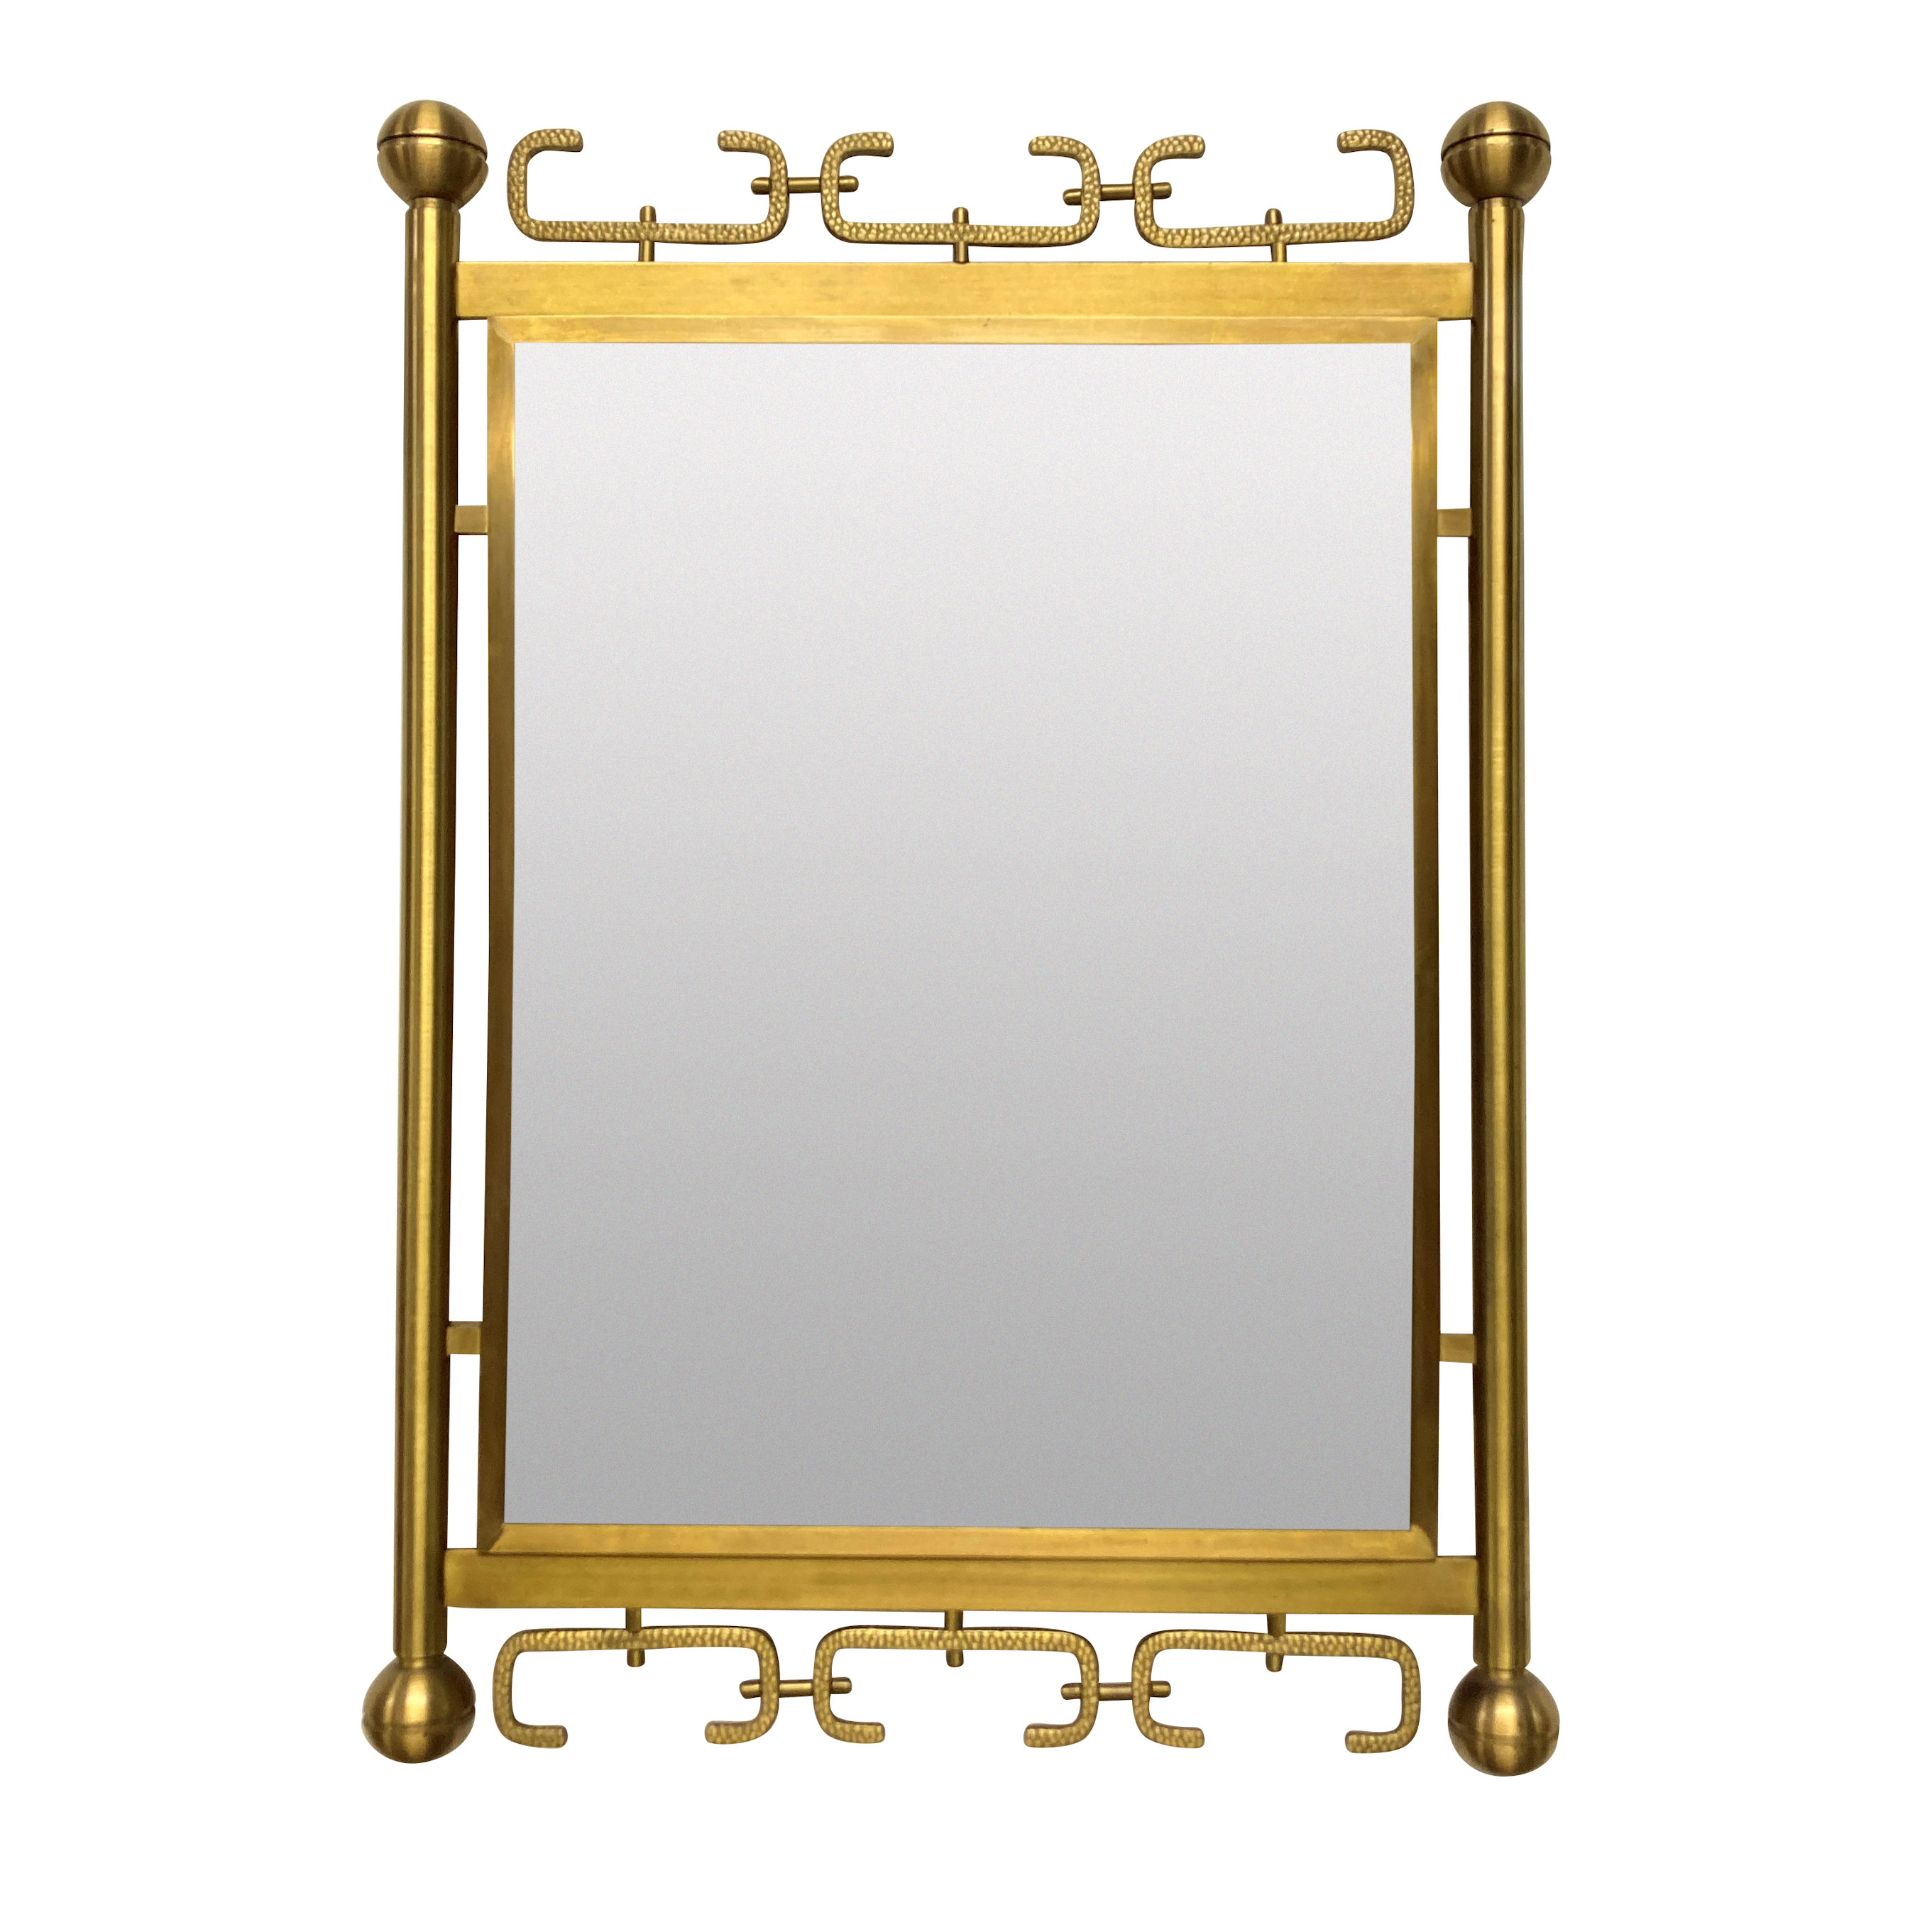 A MID-CENTURY ITALIAN MIRROR IN BRUSHED BRASS